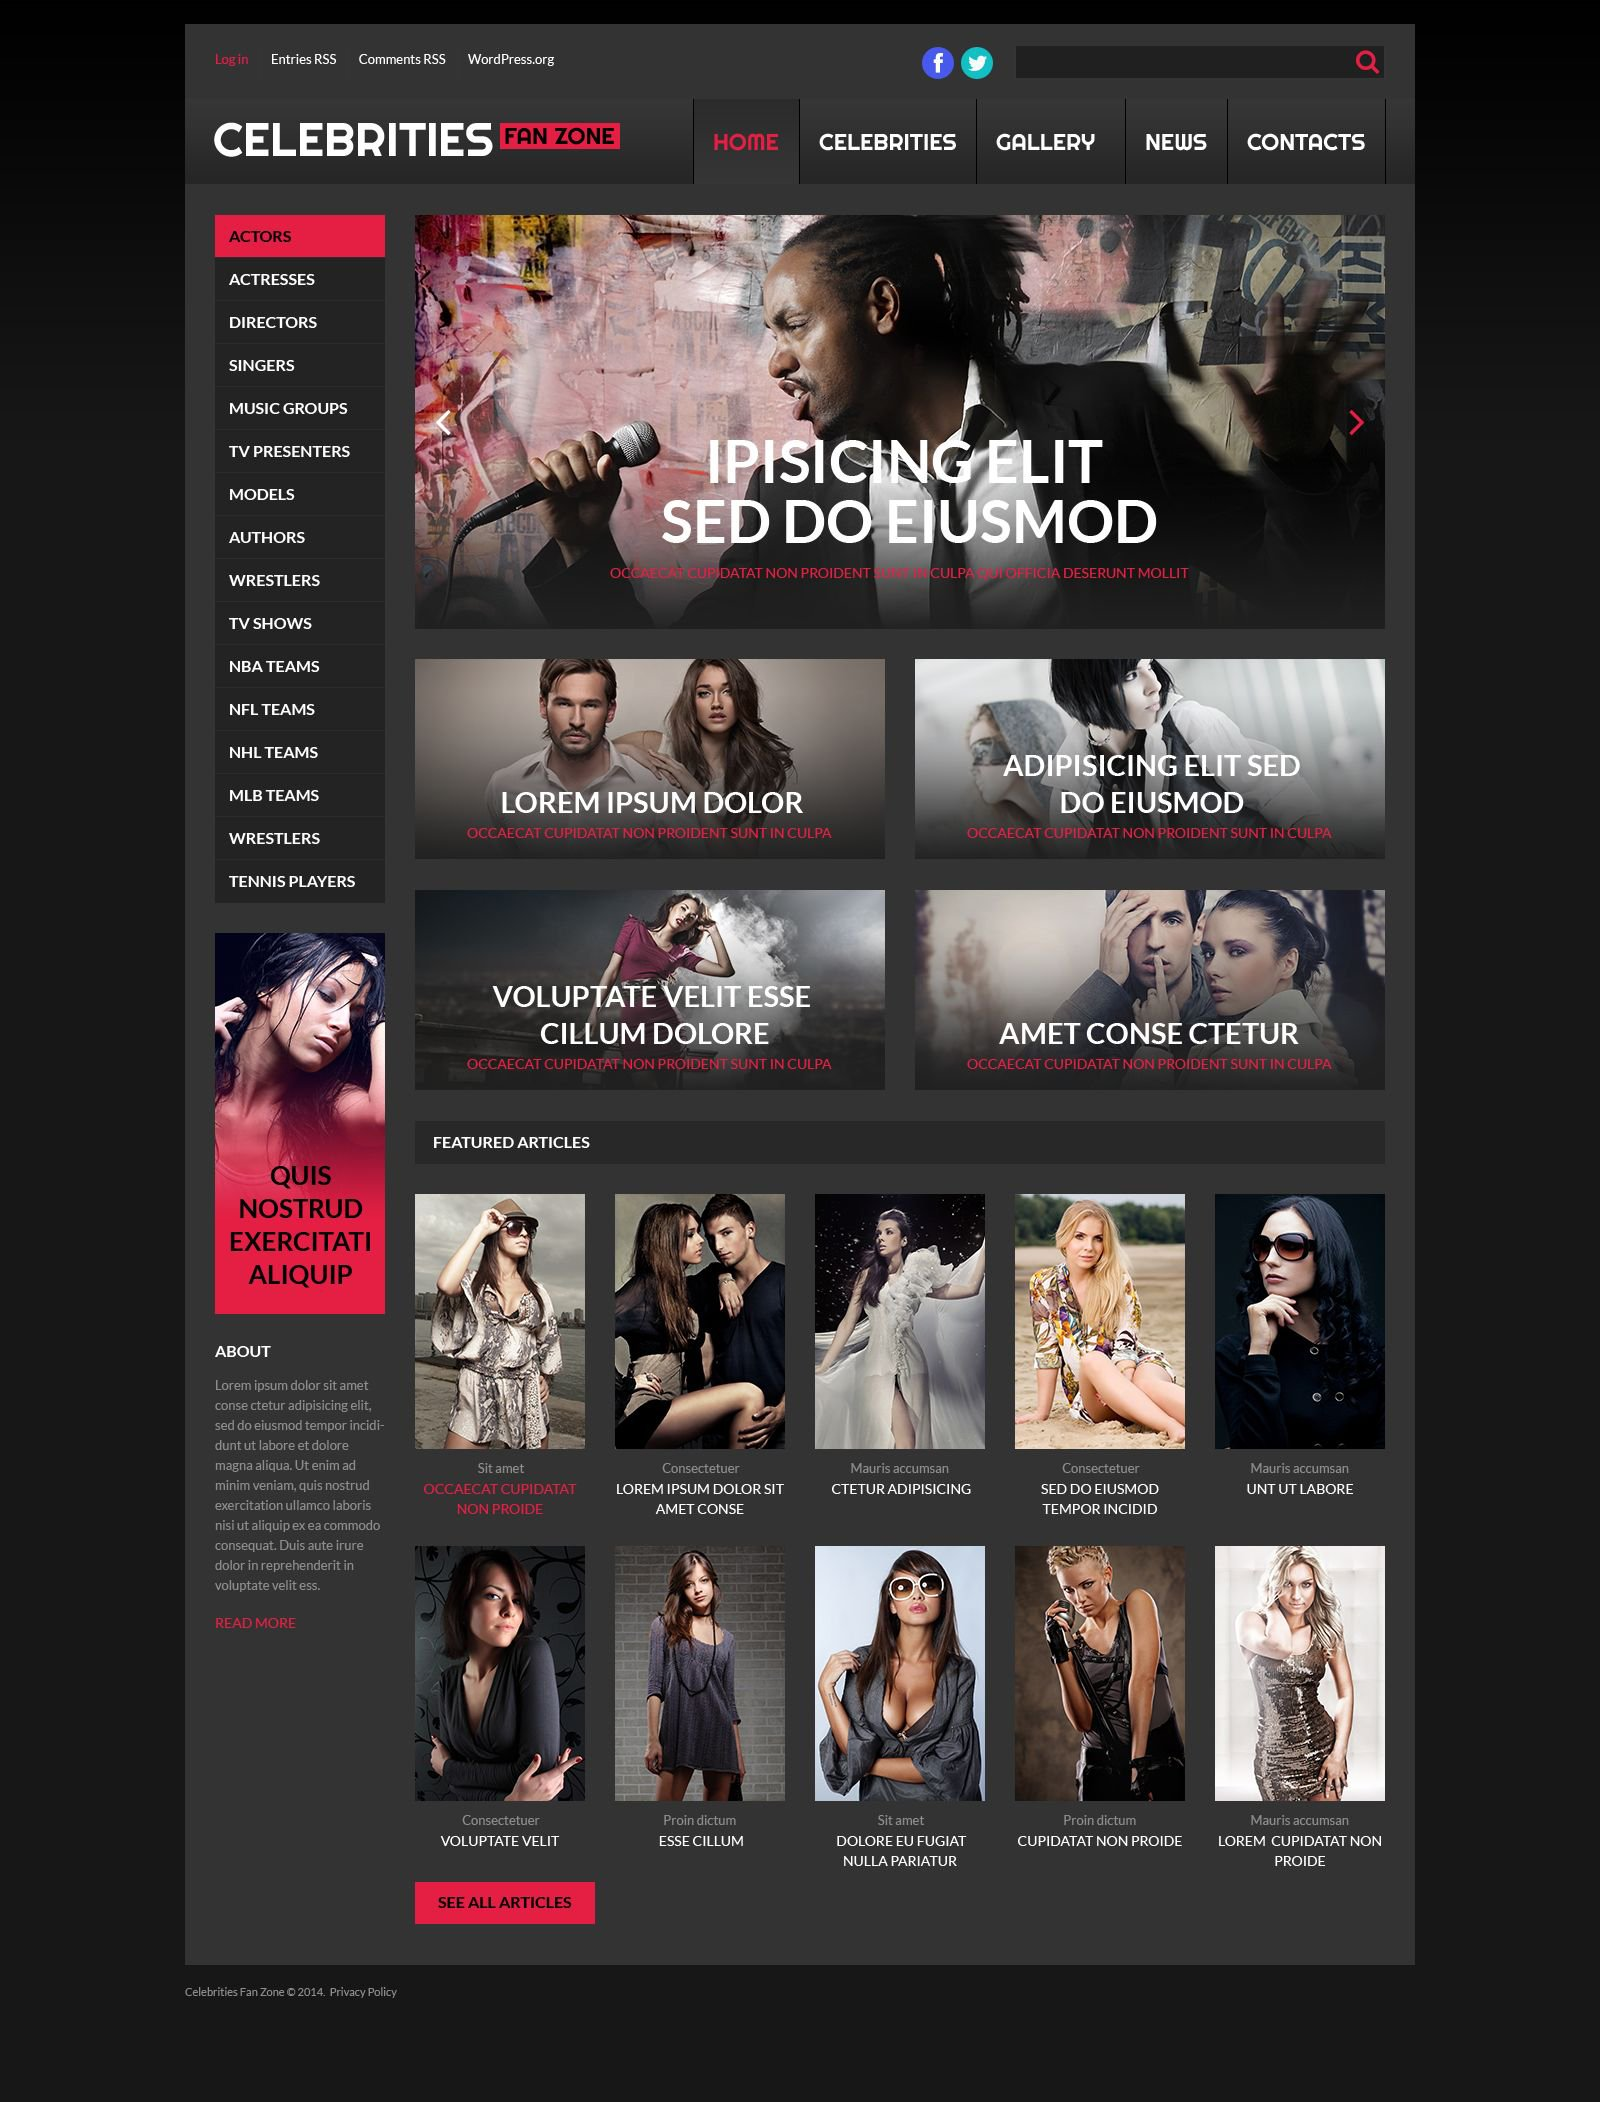 The Celebrities In WordPress Design 53261, one of the best WordPress themes of its kind (business, most popular), also known as celebrities in WordPress template, focus WordPress template, addresses WordPress template, stars WordPress template, entertainment WordPress template, news WordPress template, photos WordPress template, videos WordPress template, stories and related with celebrities in, focus, addresses, stars, entertainment, news, photos, videos, stories, etc.